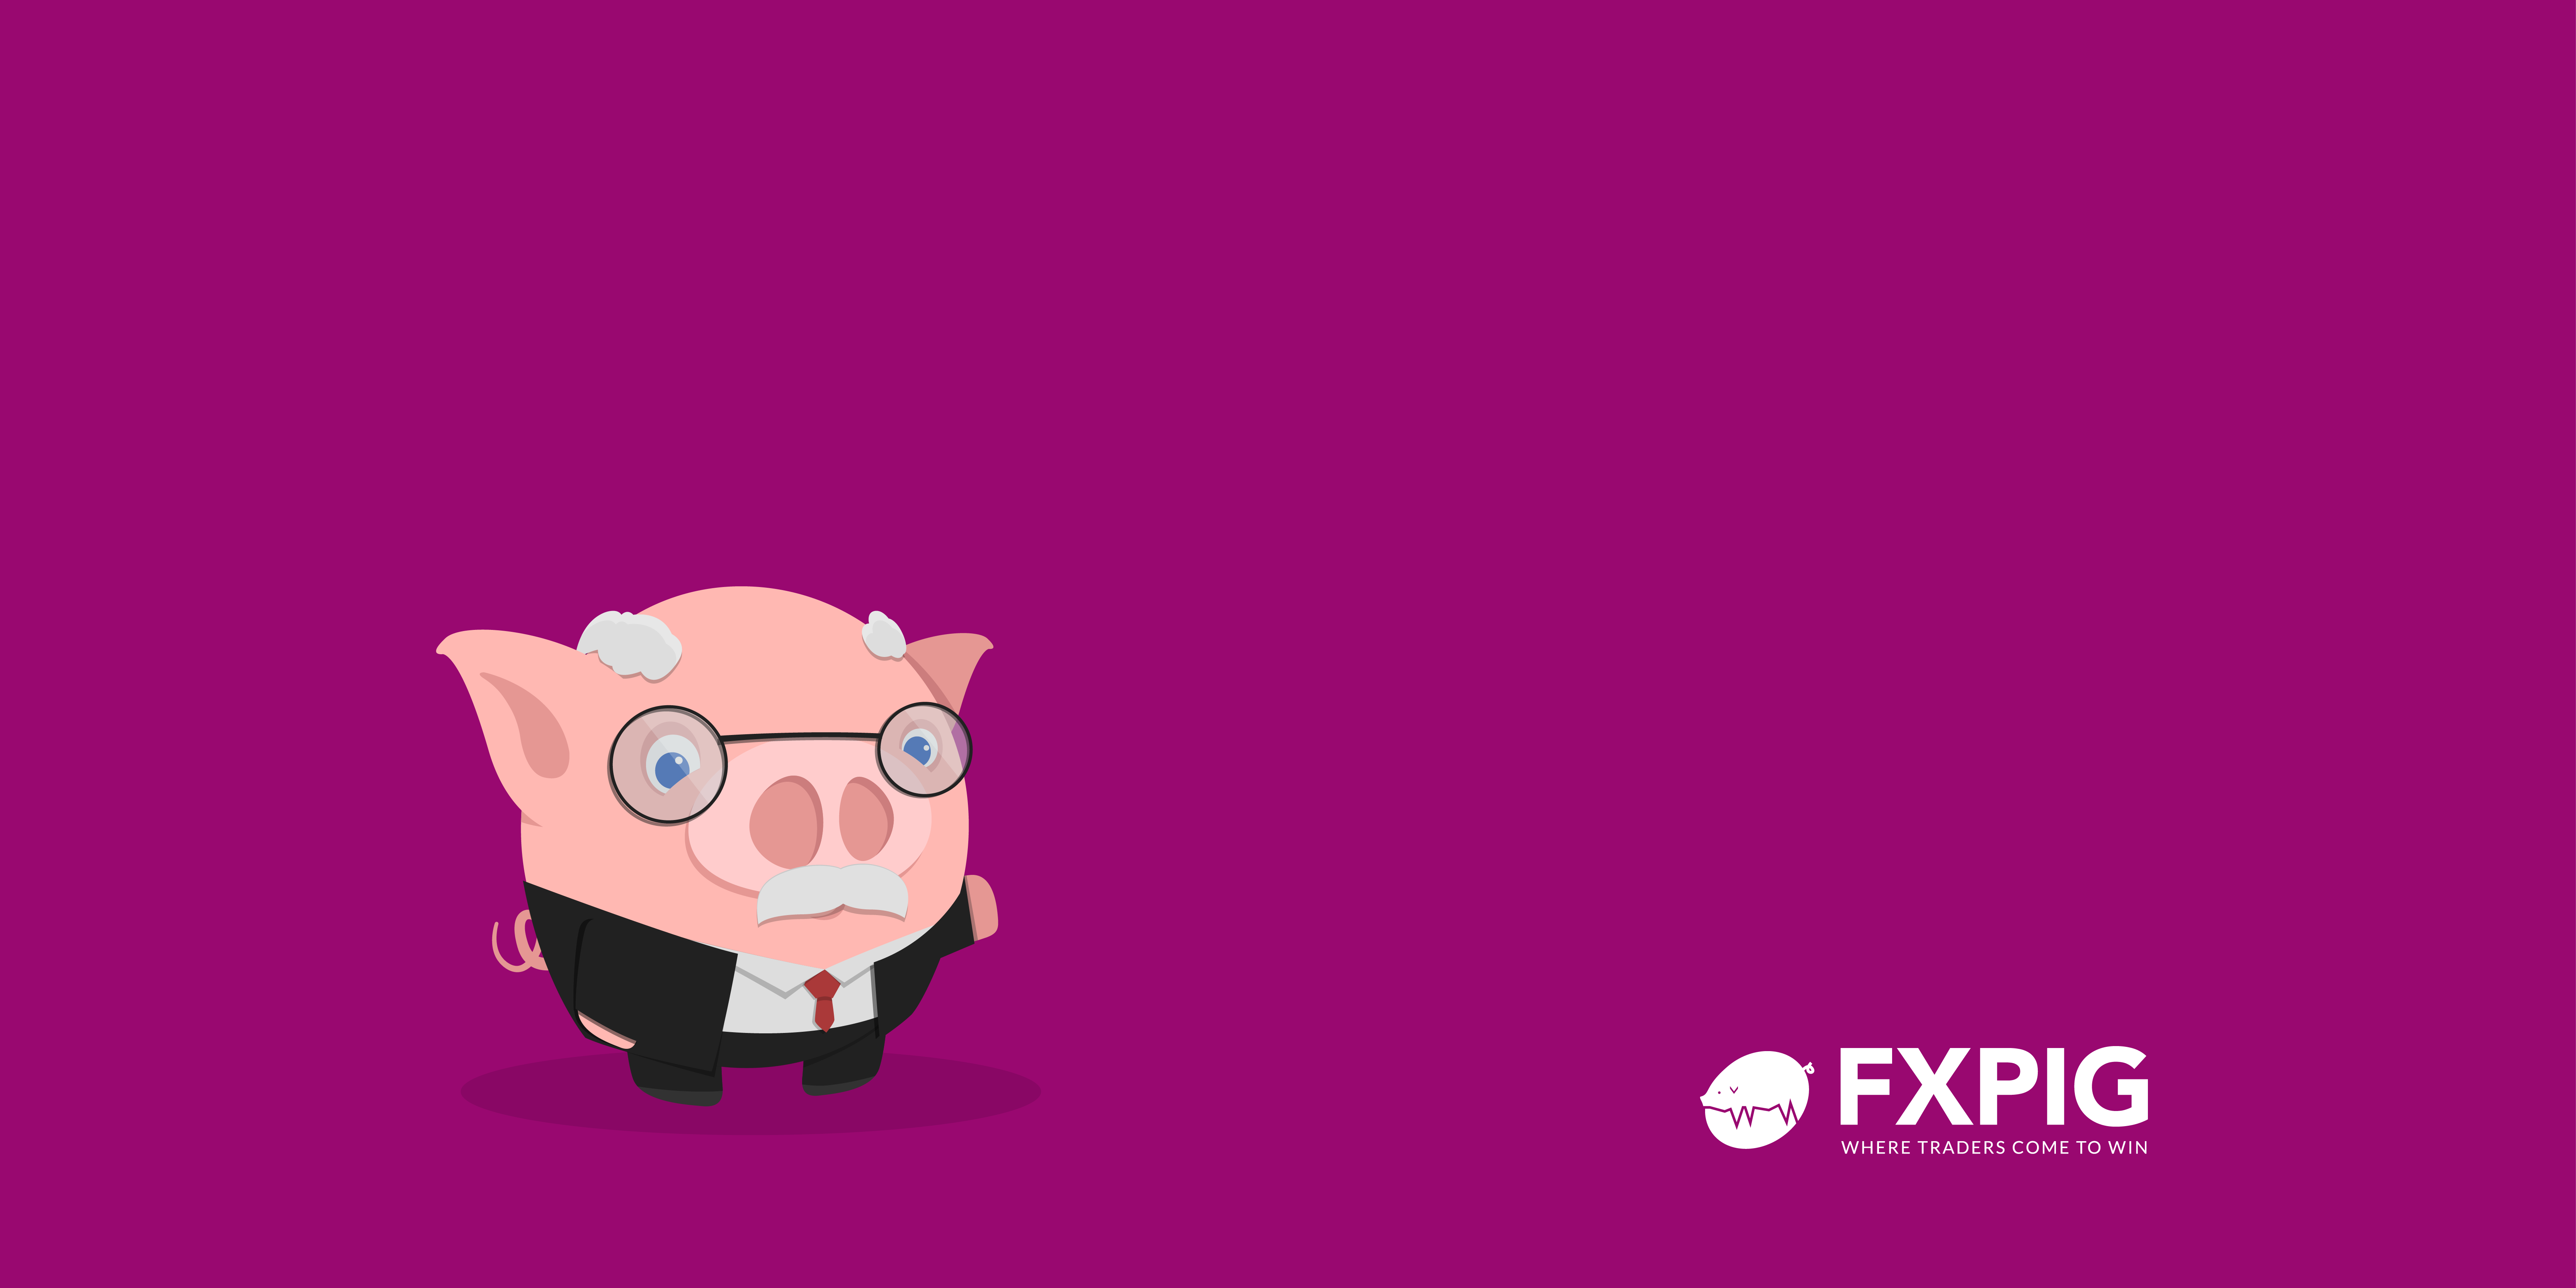 FOREX_trading-quote-pig-insider0308_FXPIG